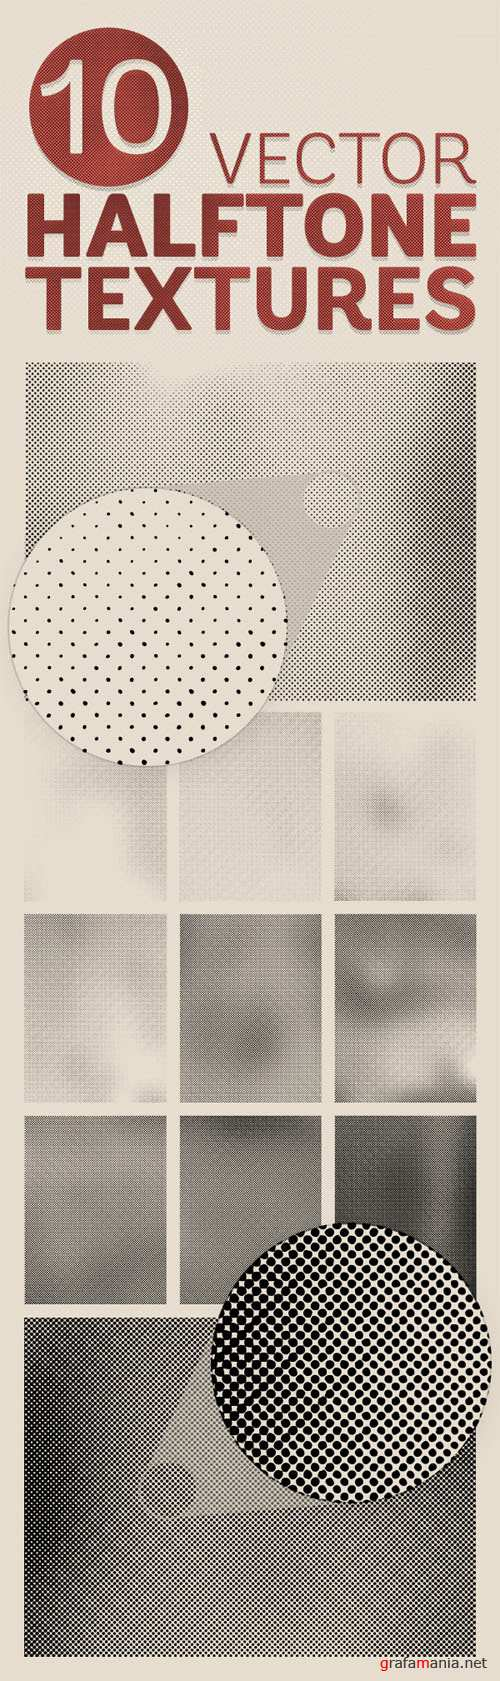 Detailed Vector Halftone Texture Backgrounds